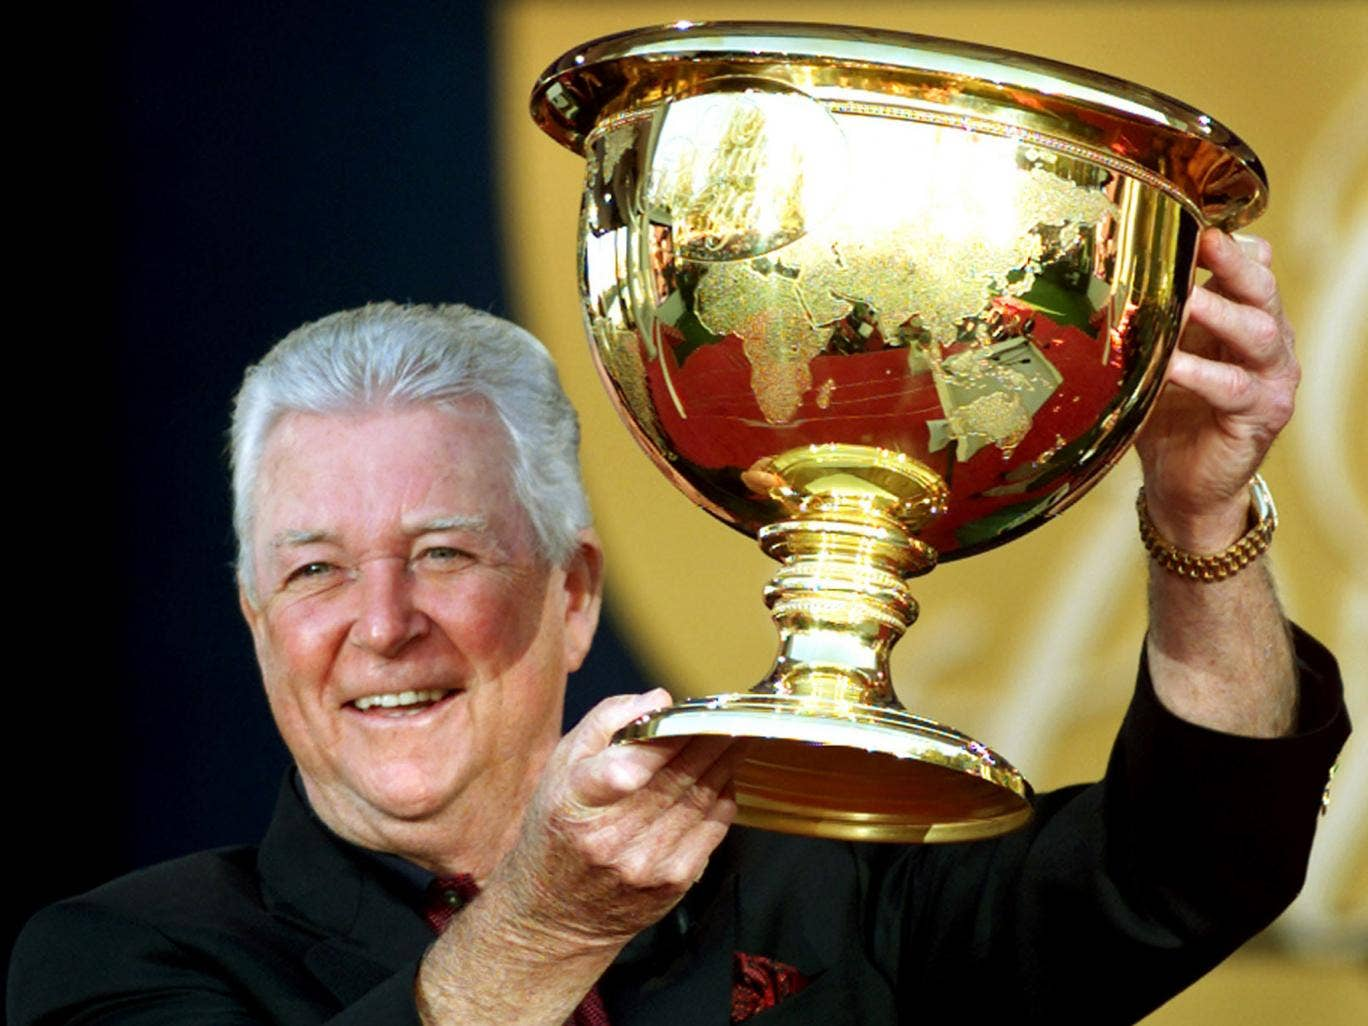 Venturi with the Presidents Cup in 2000, when he was the winning captain